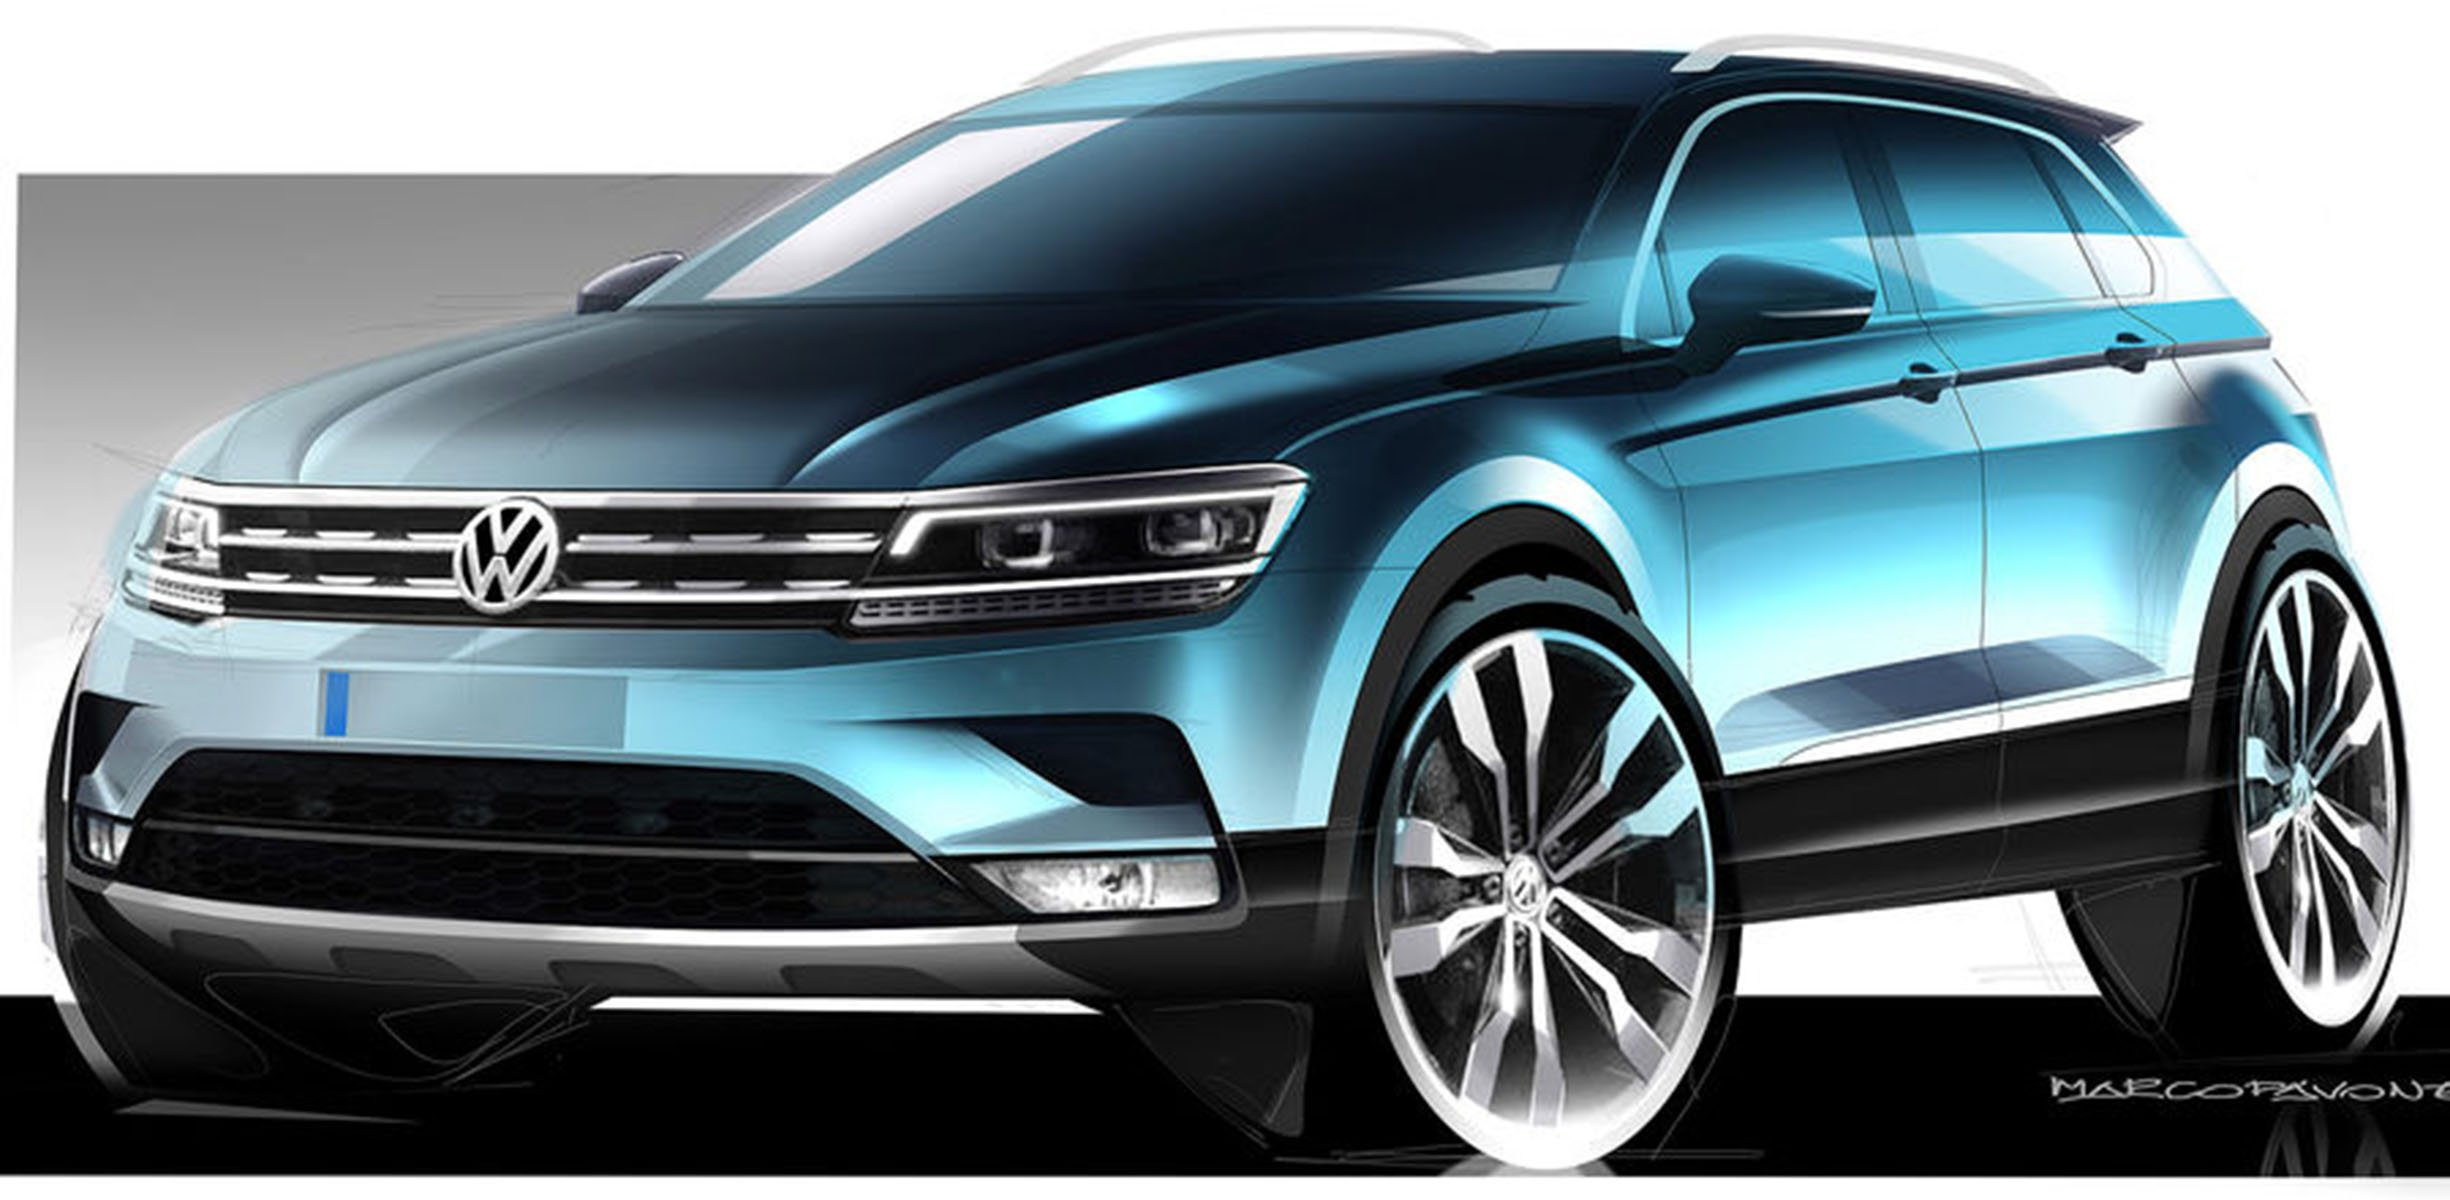 2017 volkswagen tiguan to introduce seven seat 39 coupe 39 models report photos 1 of 3. Black Bedroom Furniture Sets. Home Design Ideas